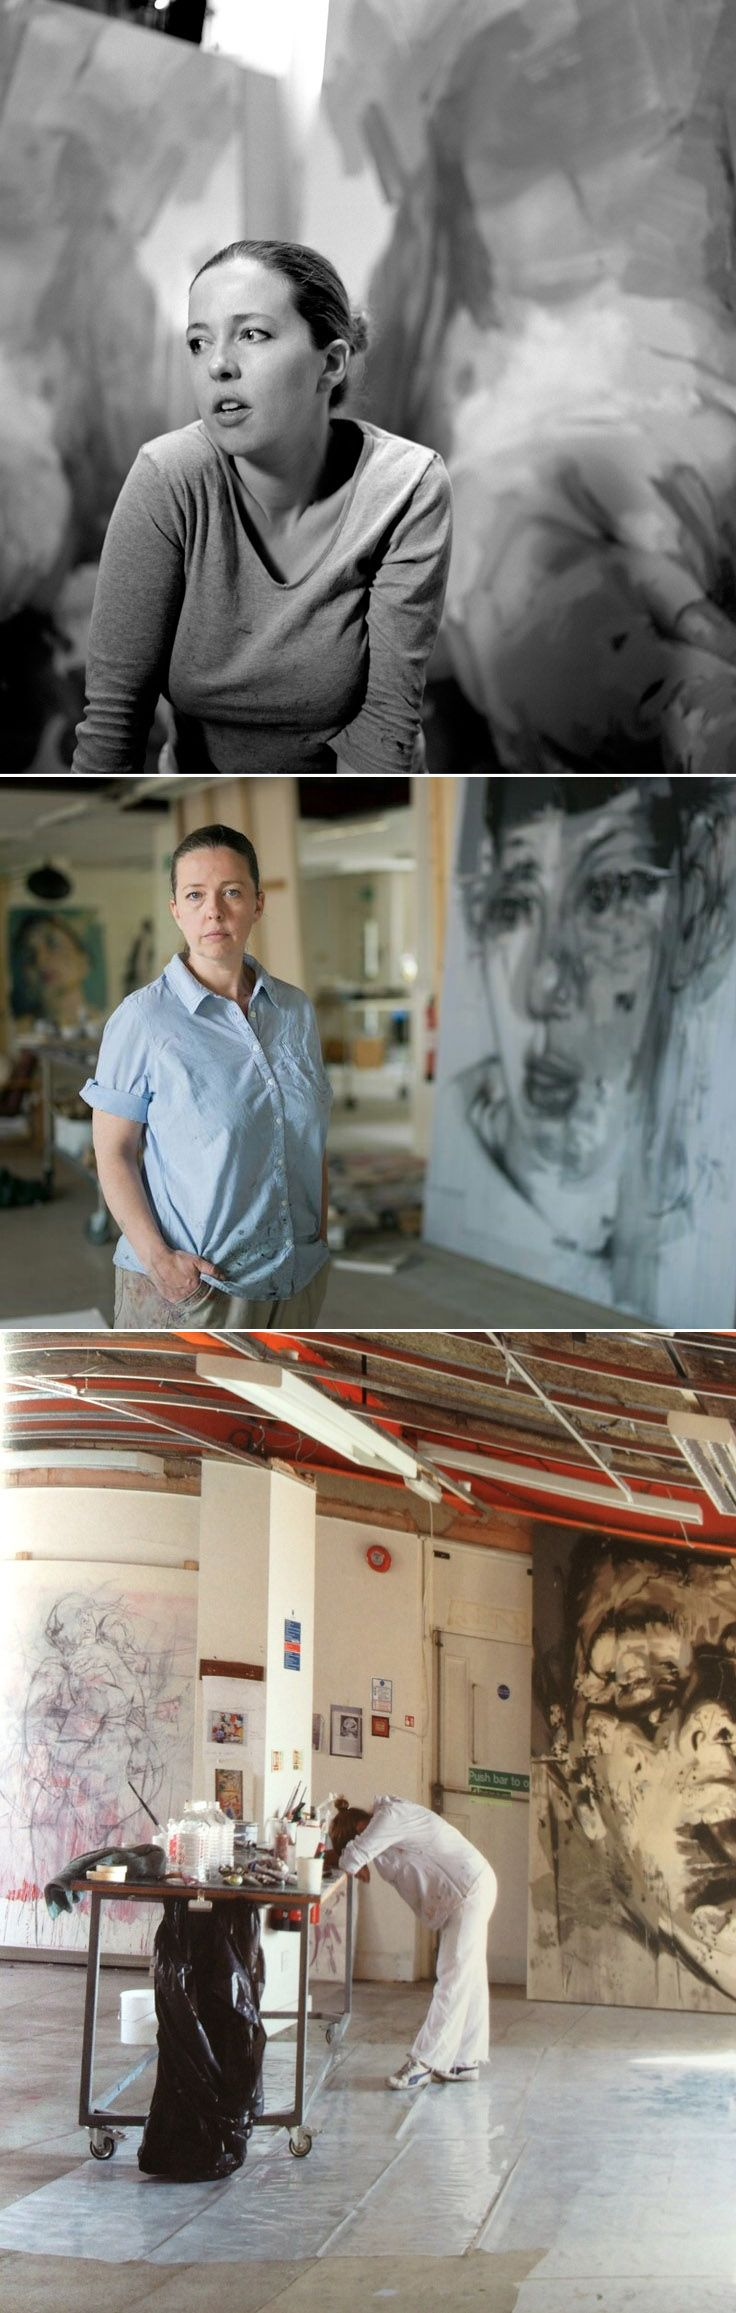 Jenny Saville (b1970 Cambridge, United Kingdom). One of the best painters of all time!!